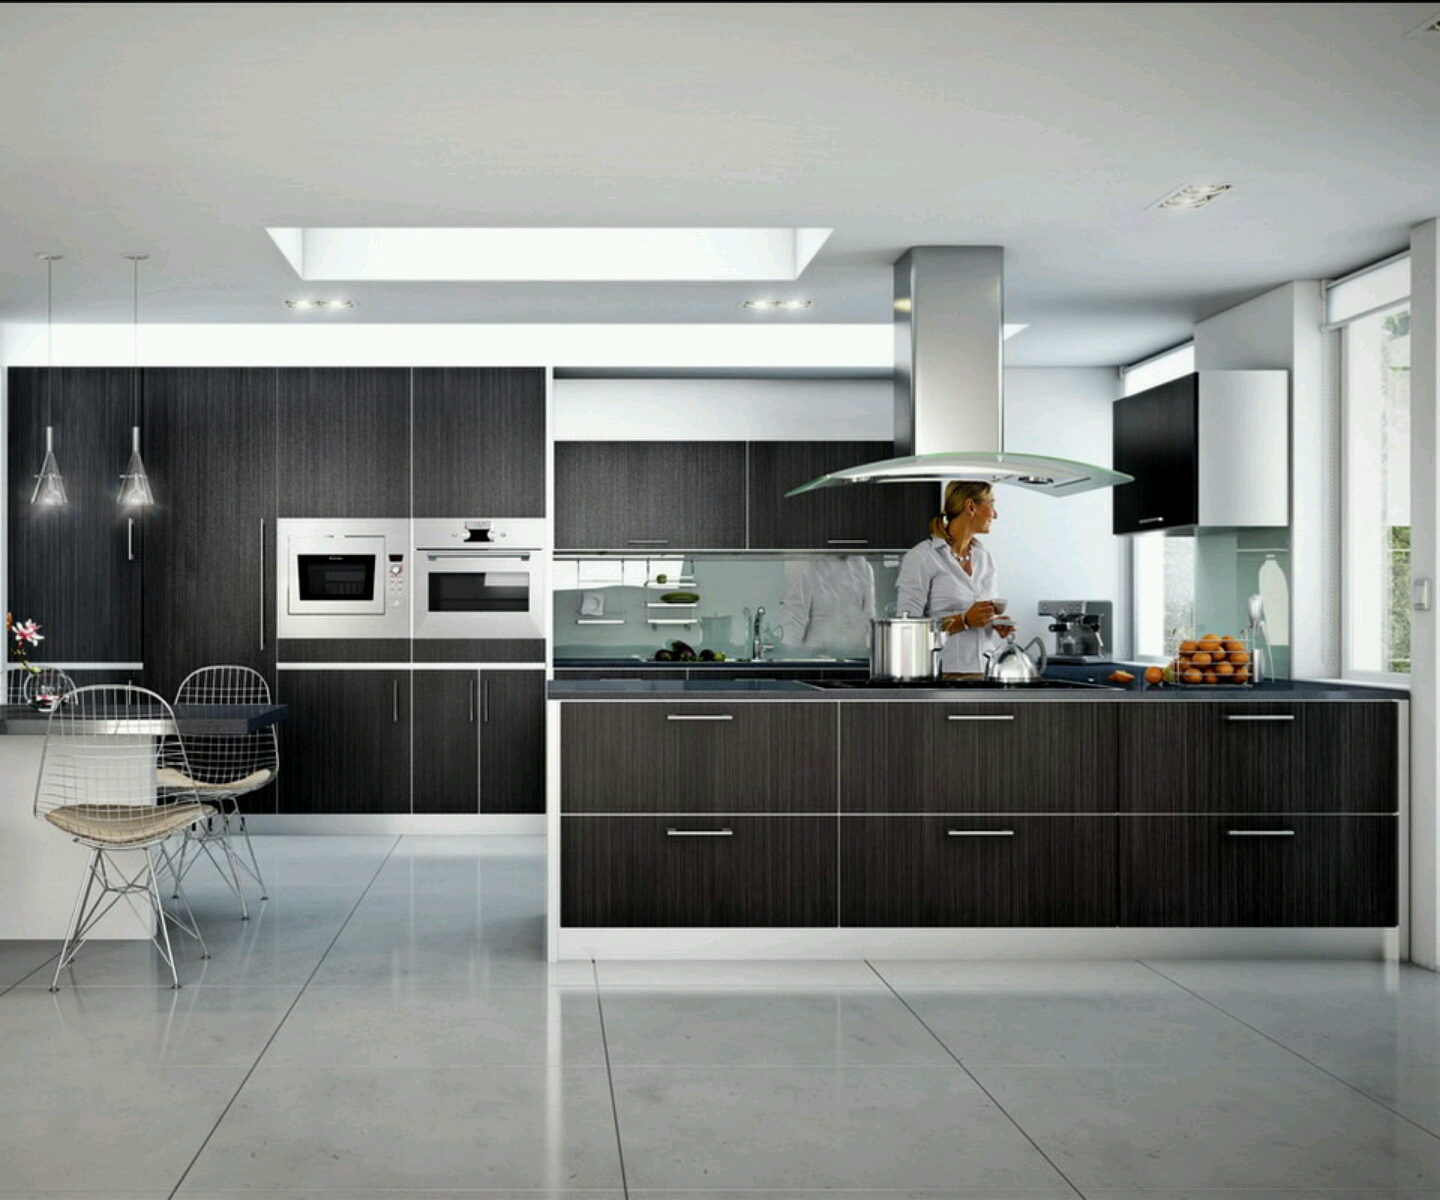 Rumah rumah minimalis modern homes ultra modern kitchen for Design minimalis modern